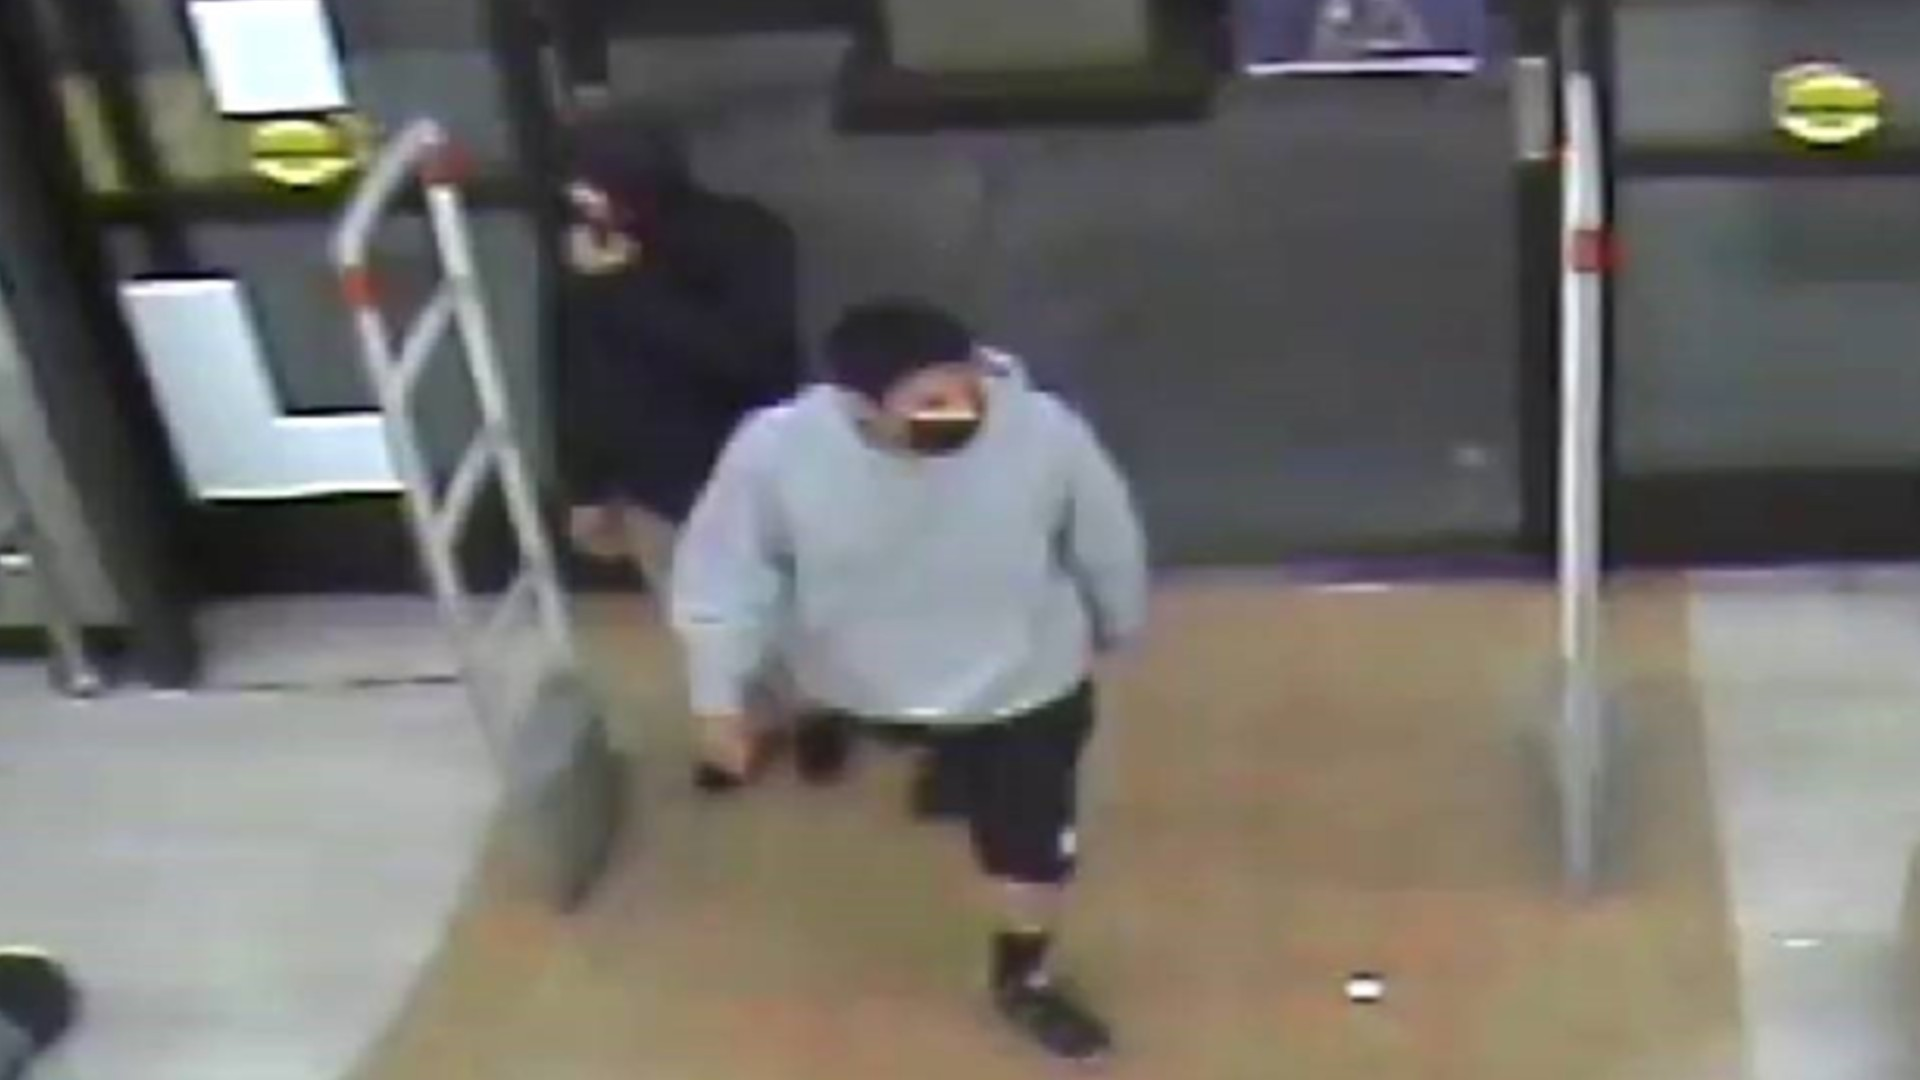 The Los Angeles Police Department released surveillance video images showing the two men suspected in the killing of the Rite Aid employee in Glassell Park on July 15, 2021. (LAPD)